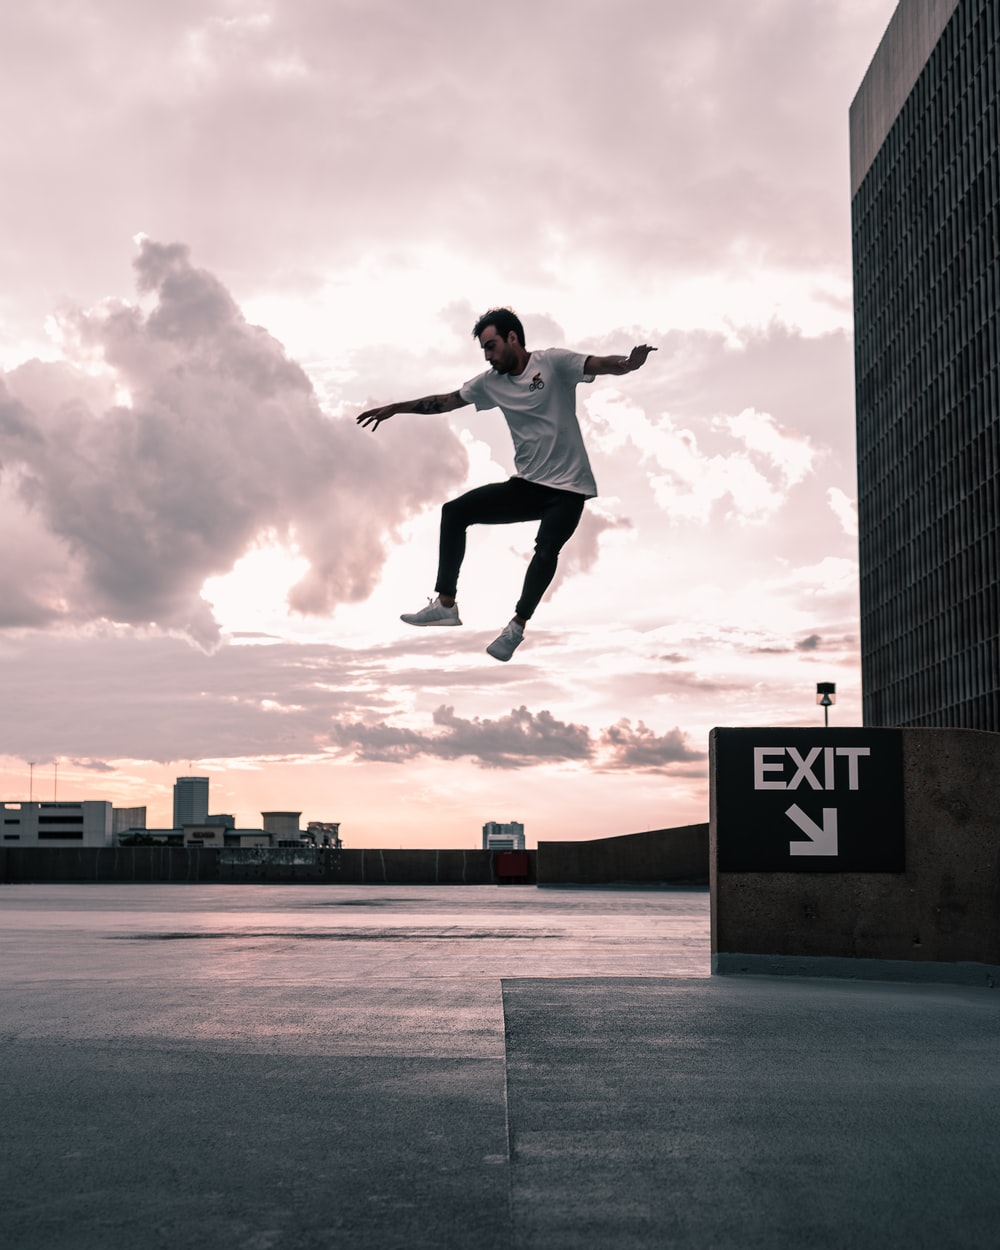 man in white shirt and black pants jumping on mid air